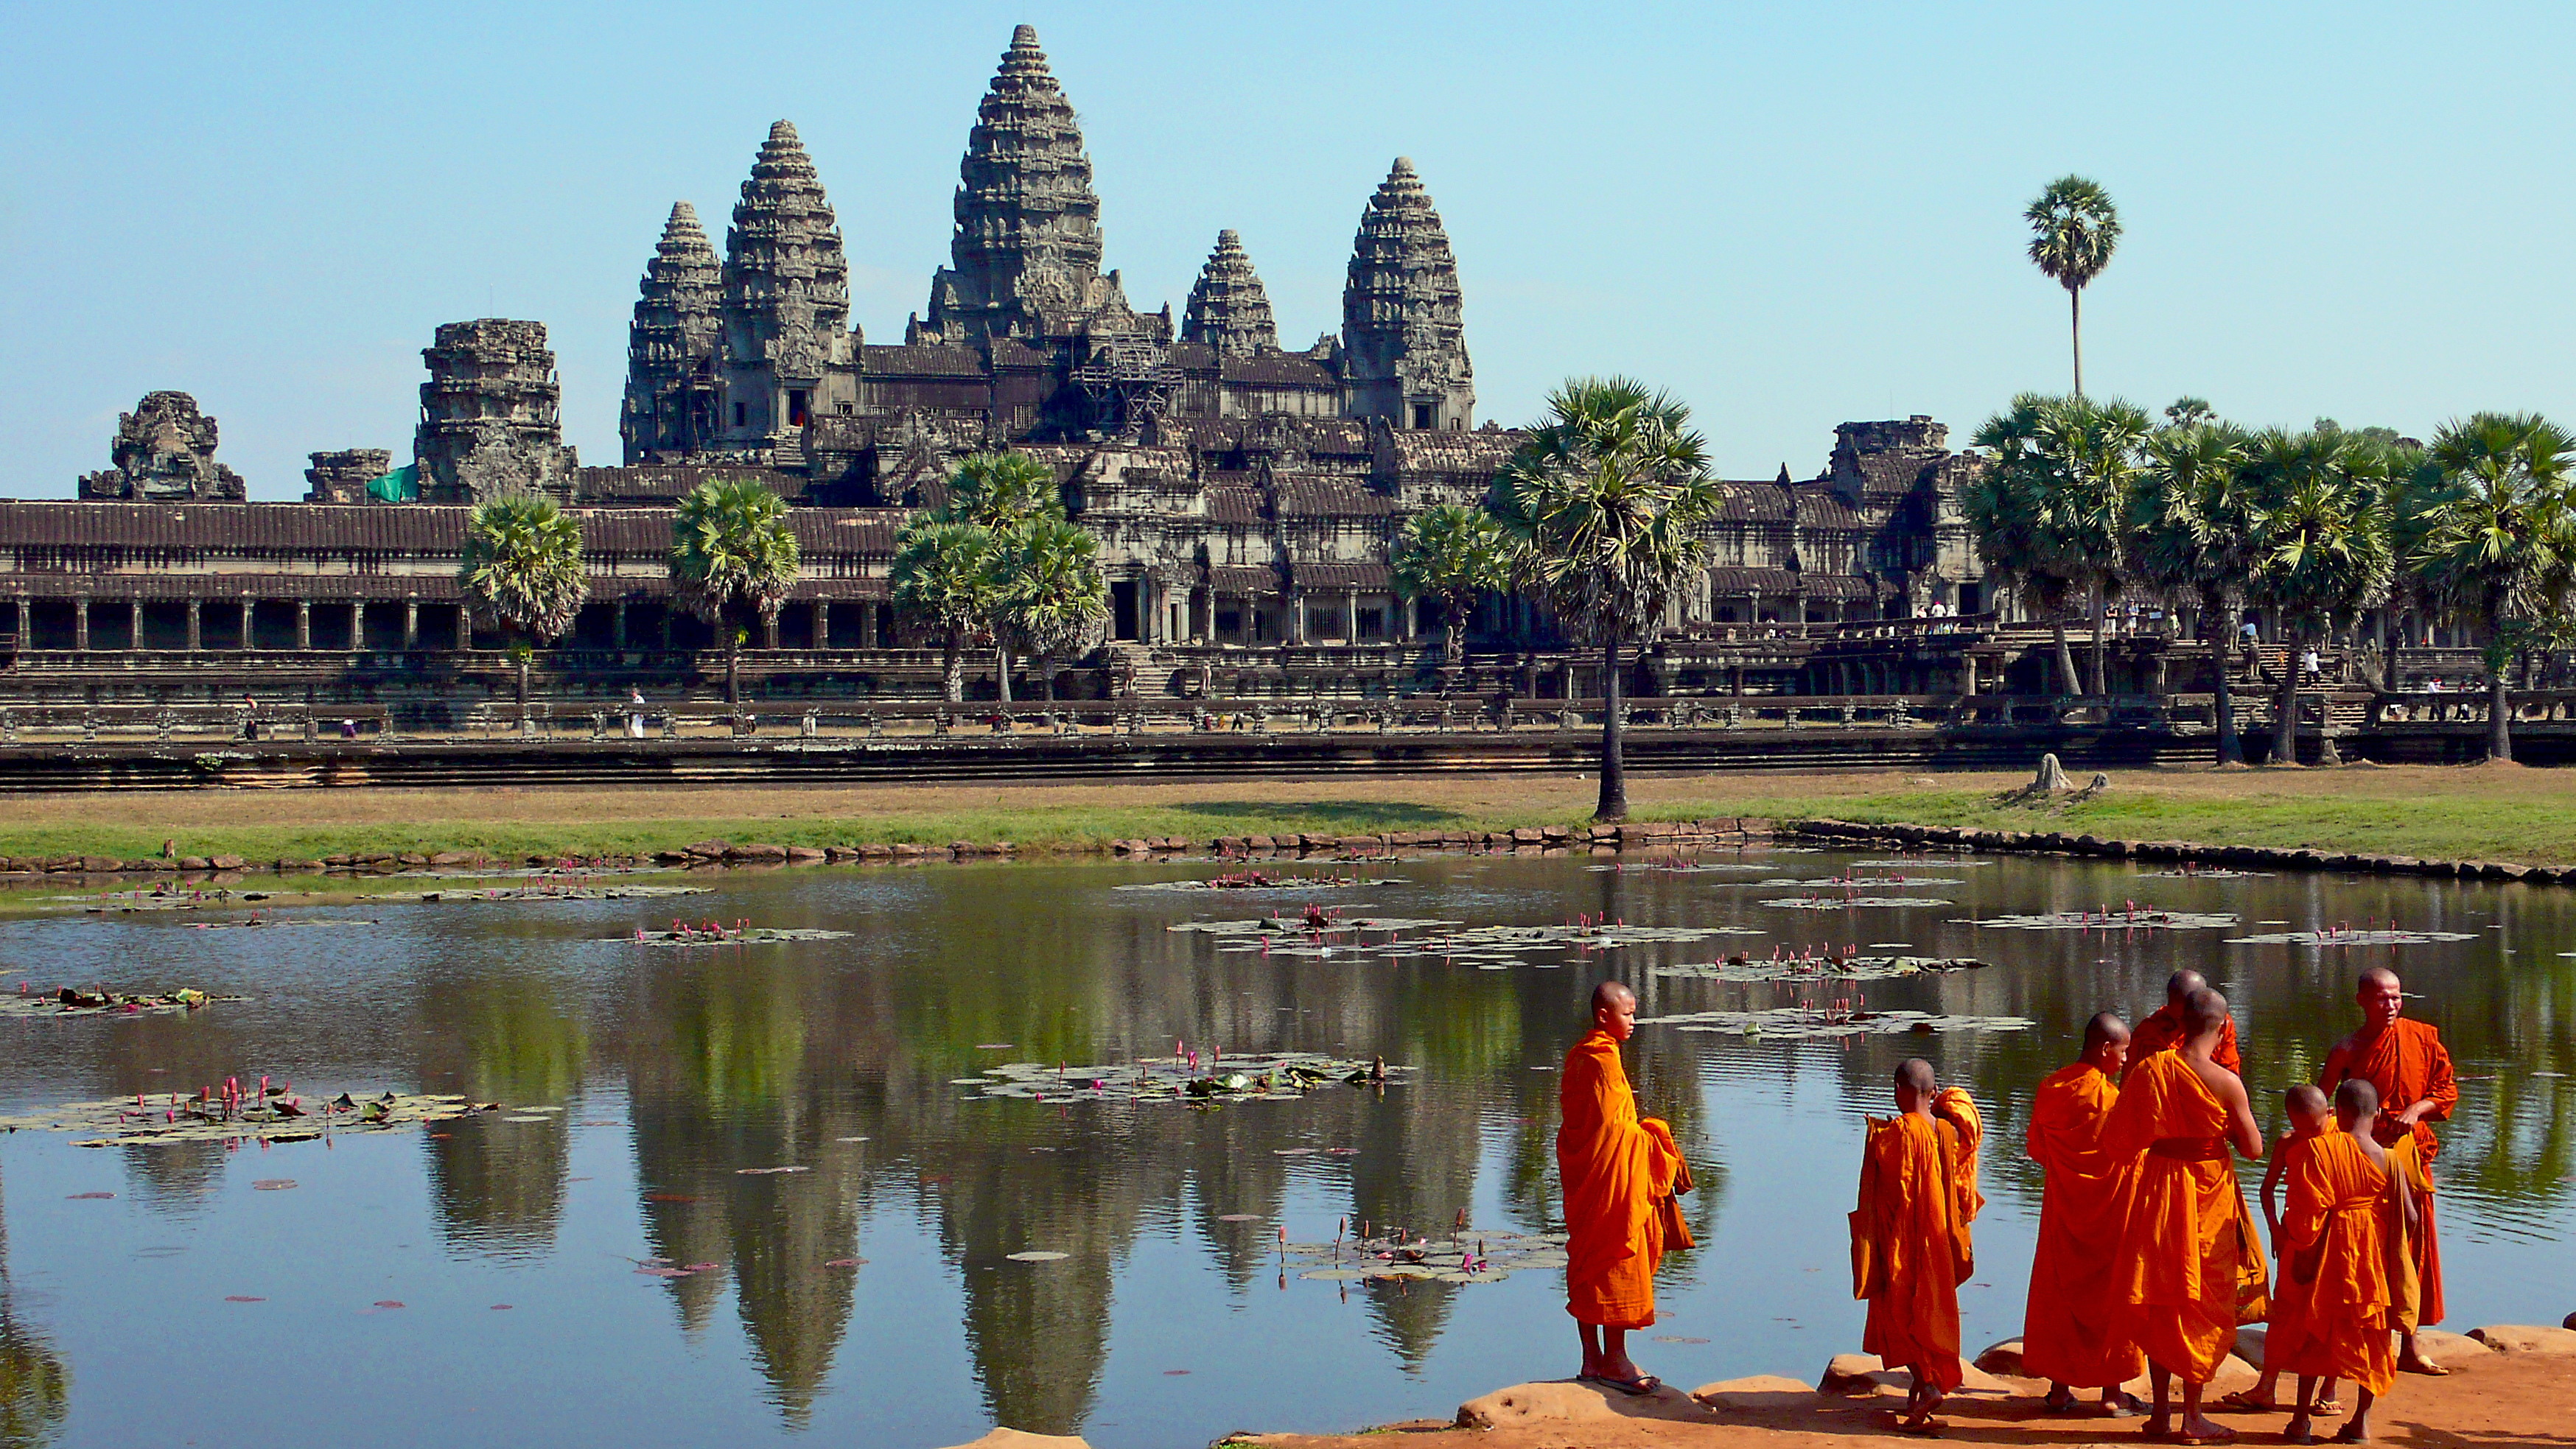 front_of_the_Angkor_Wat